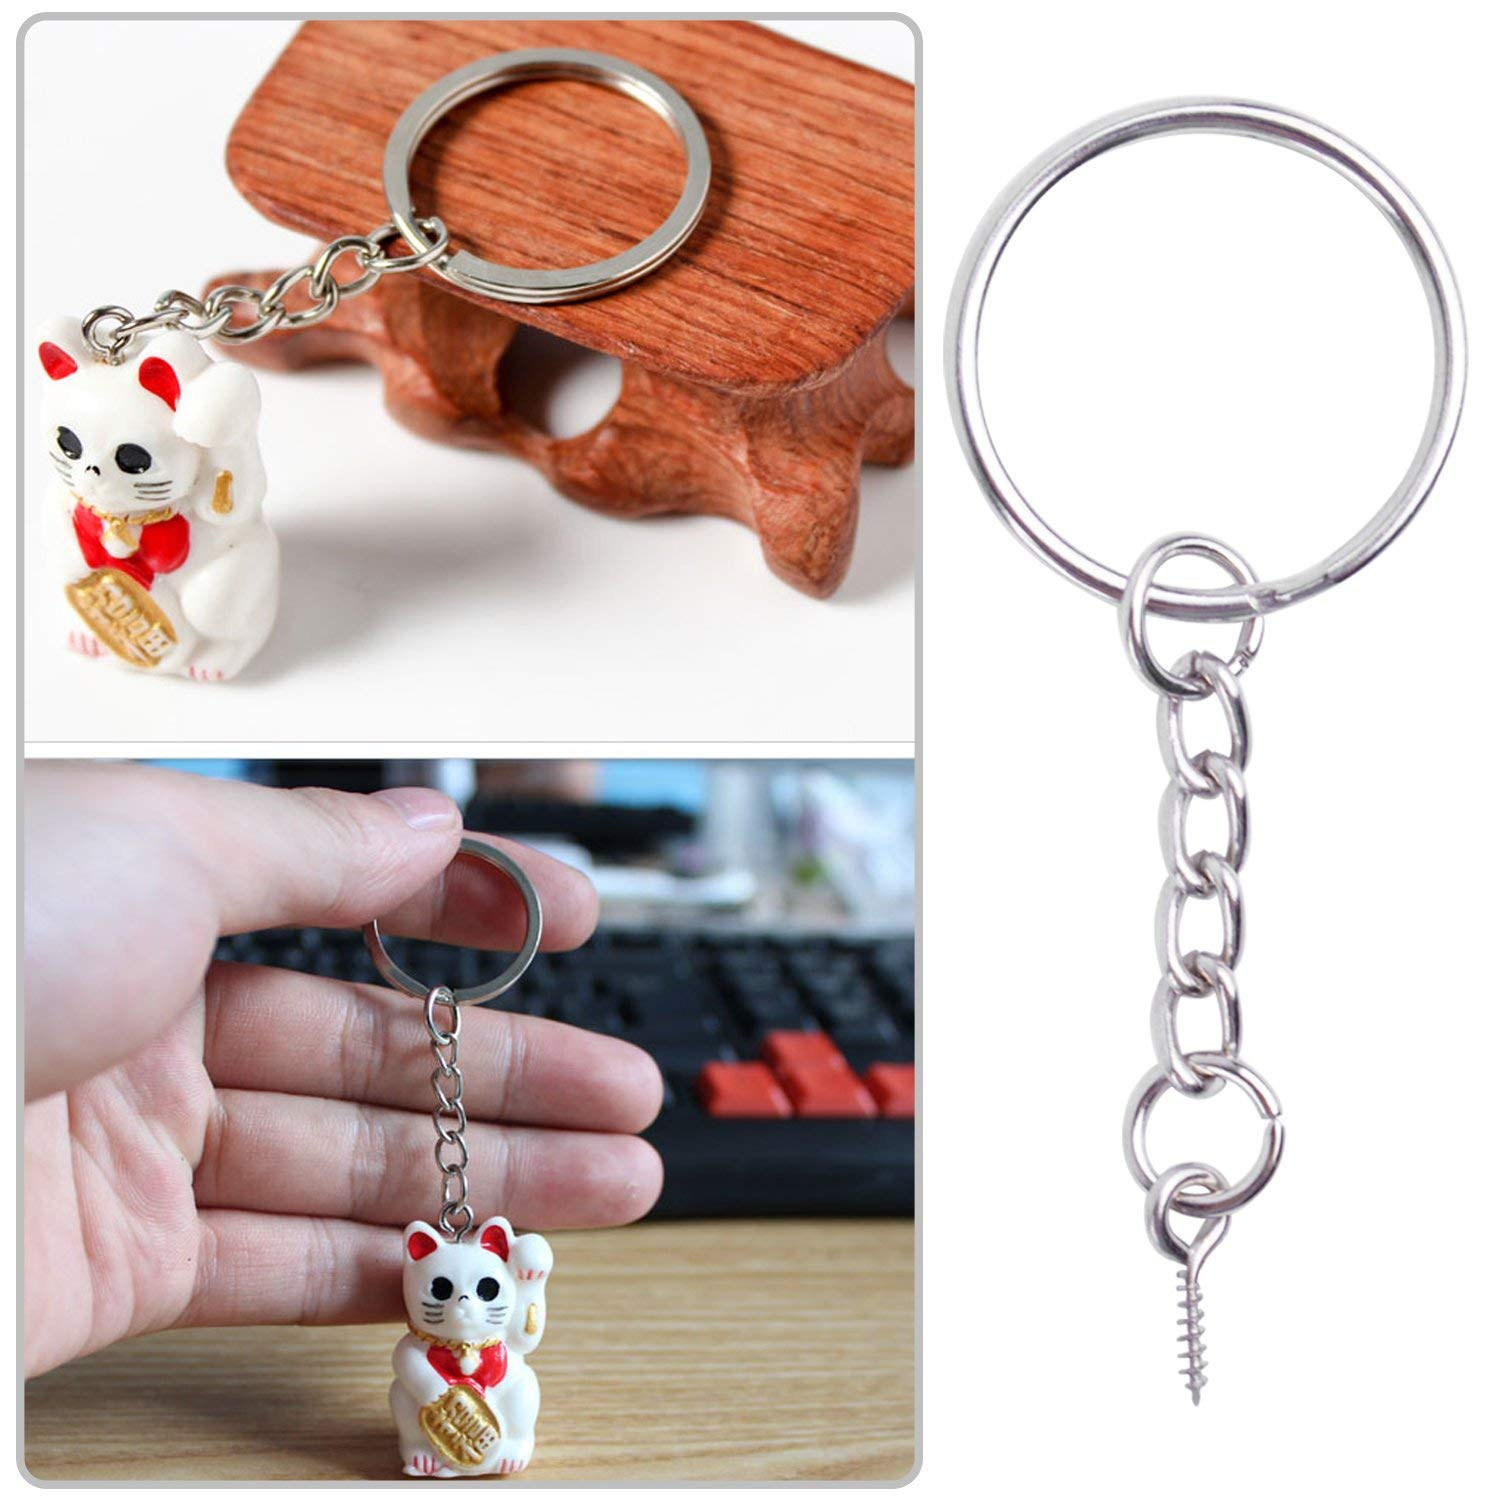 BronaGrand 25mm Split Key Ring with Extend Chain and 12mm Screw Eye Pin for Craft Charm Making 50 Pack